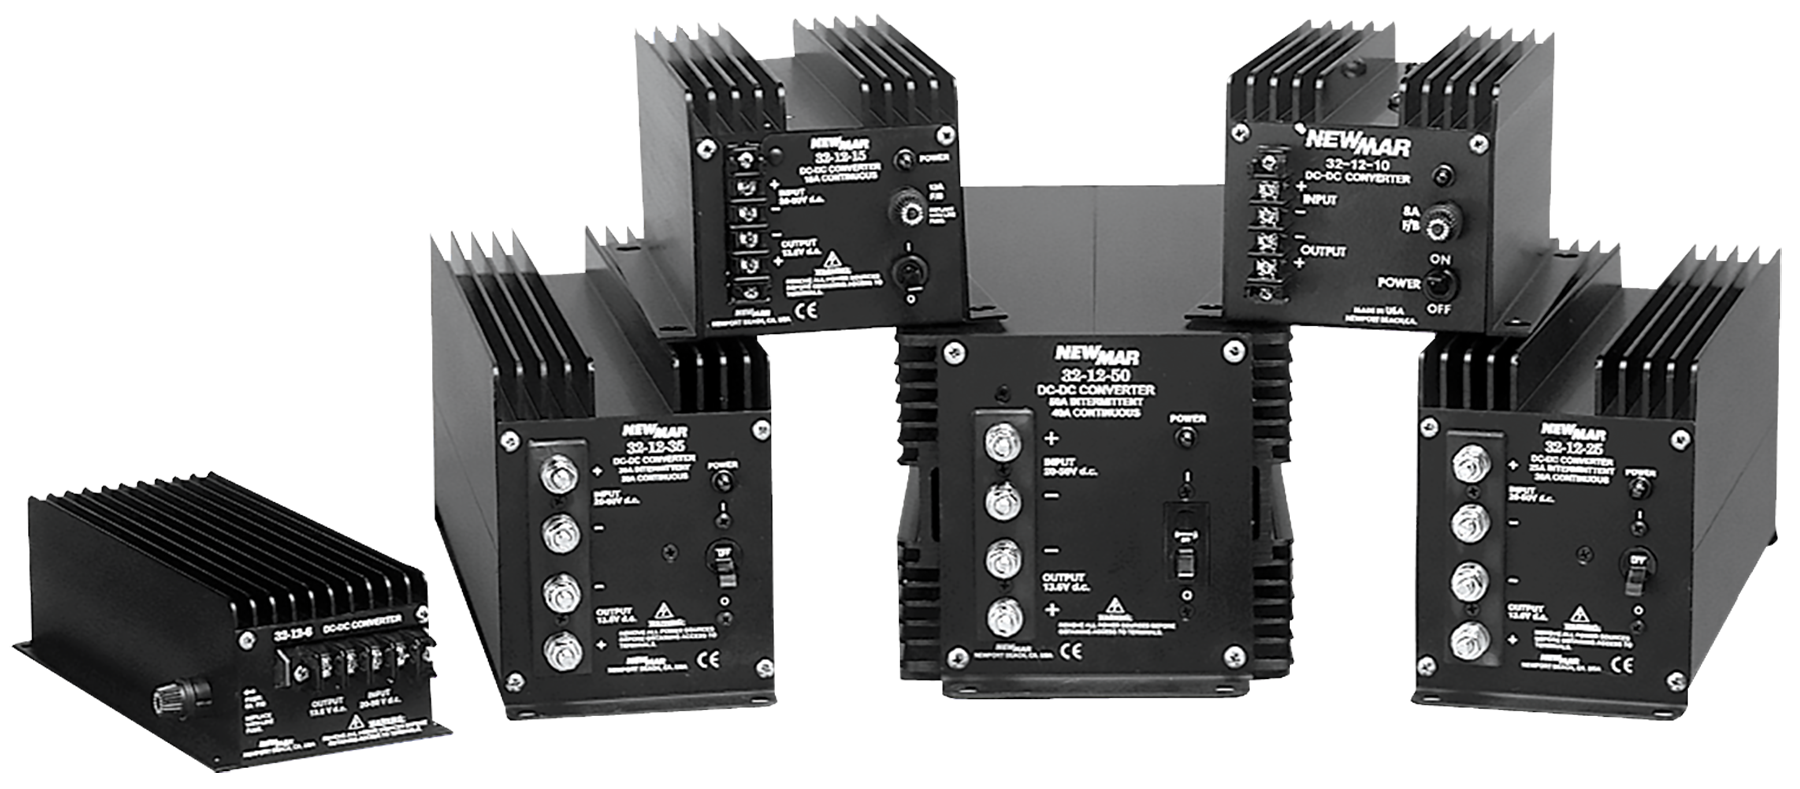 Table Top, Bench Mount and Mobile Mount DC-DC Converters, 24VDC to 12VDC, 48VDC to 12VDC and 48VDC to 24VDC, 3 amps to 50 amps by Newmar Powering the Network